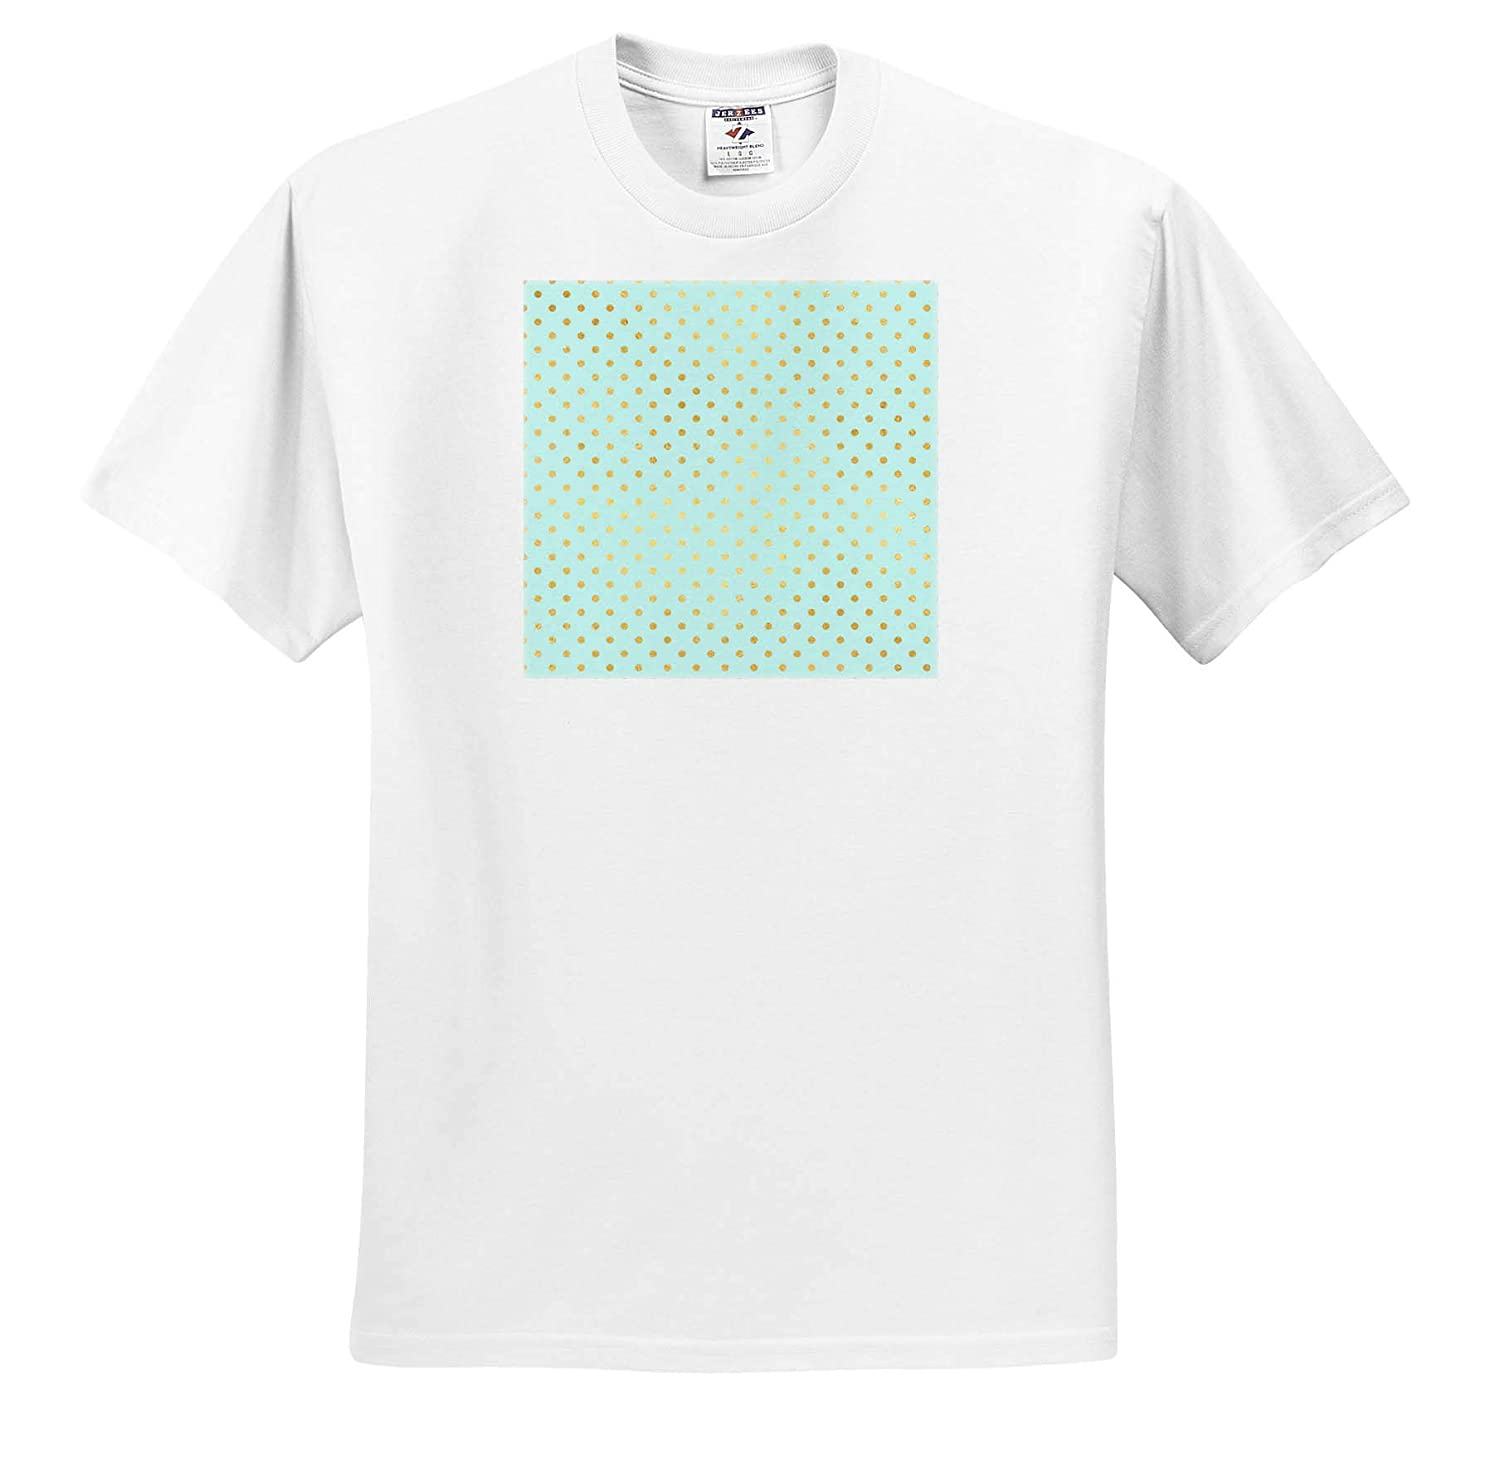 3dRose Anne Marie Baugh Cute Gold Color On Mint Green Polka Dot Pattern T-Shirts Patterns